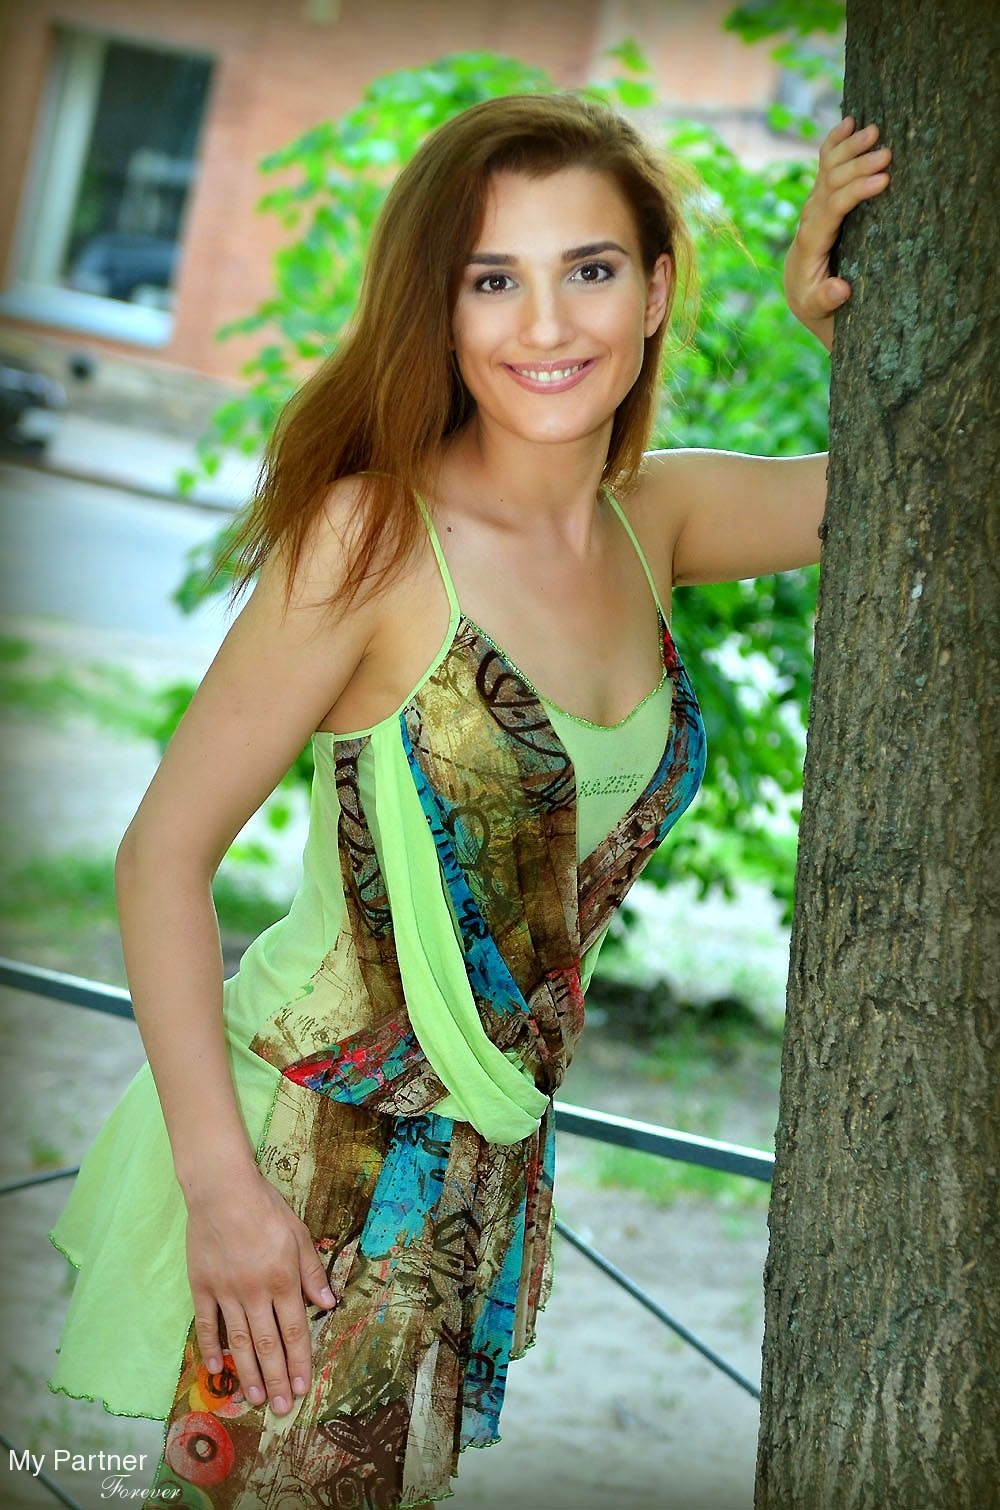 With Ukrainian Women Dating With 20